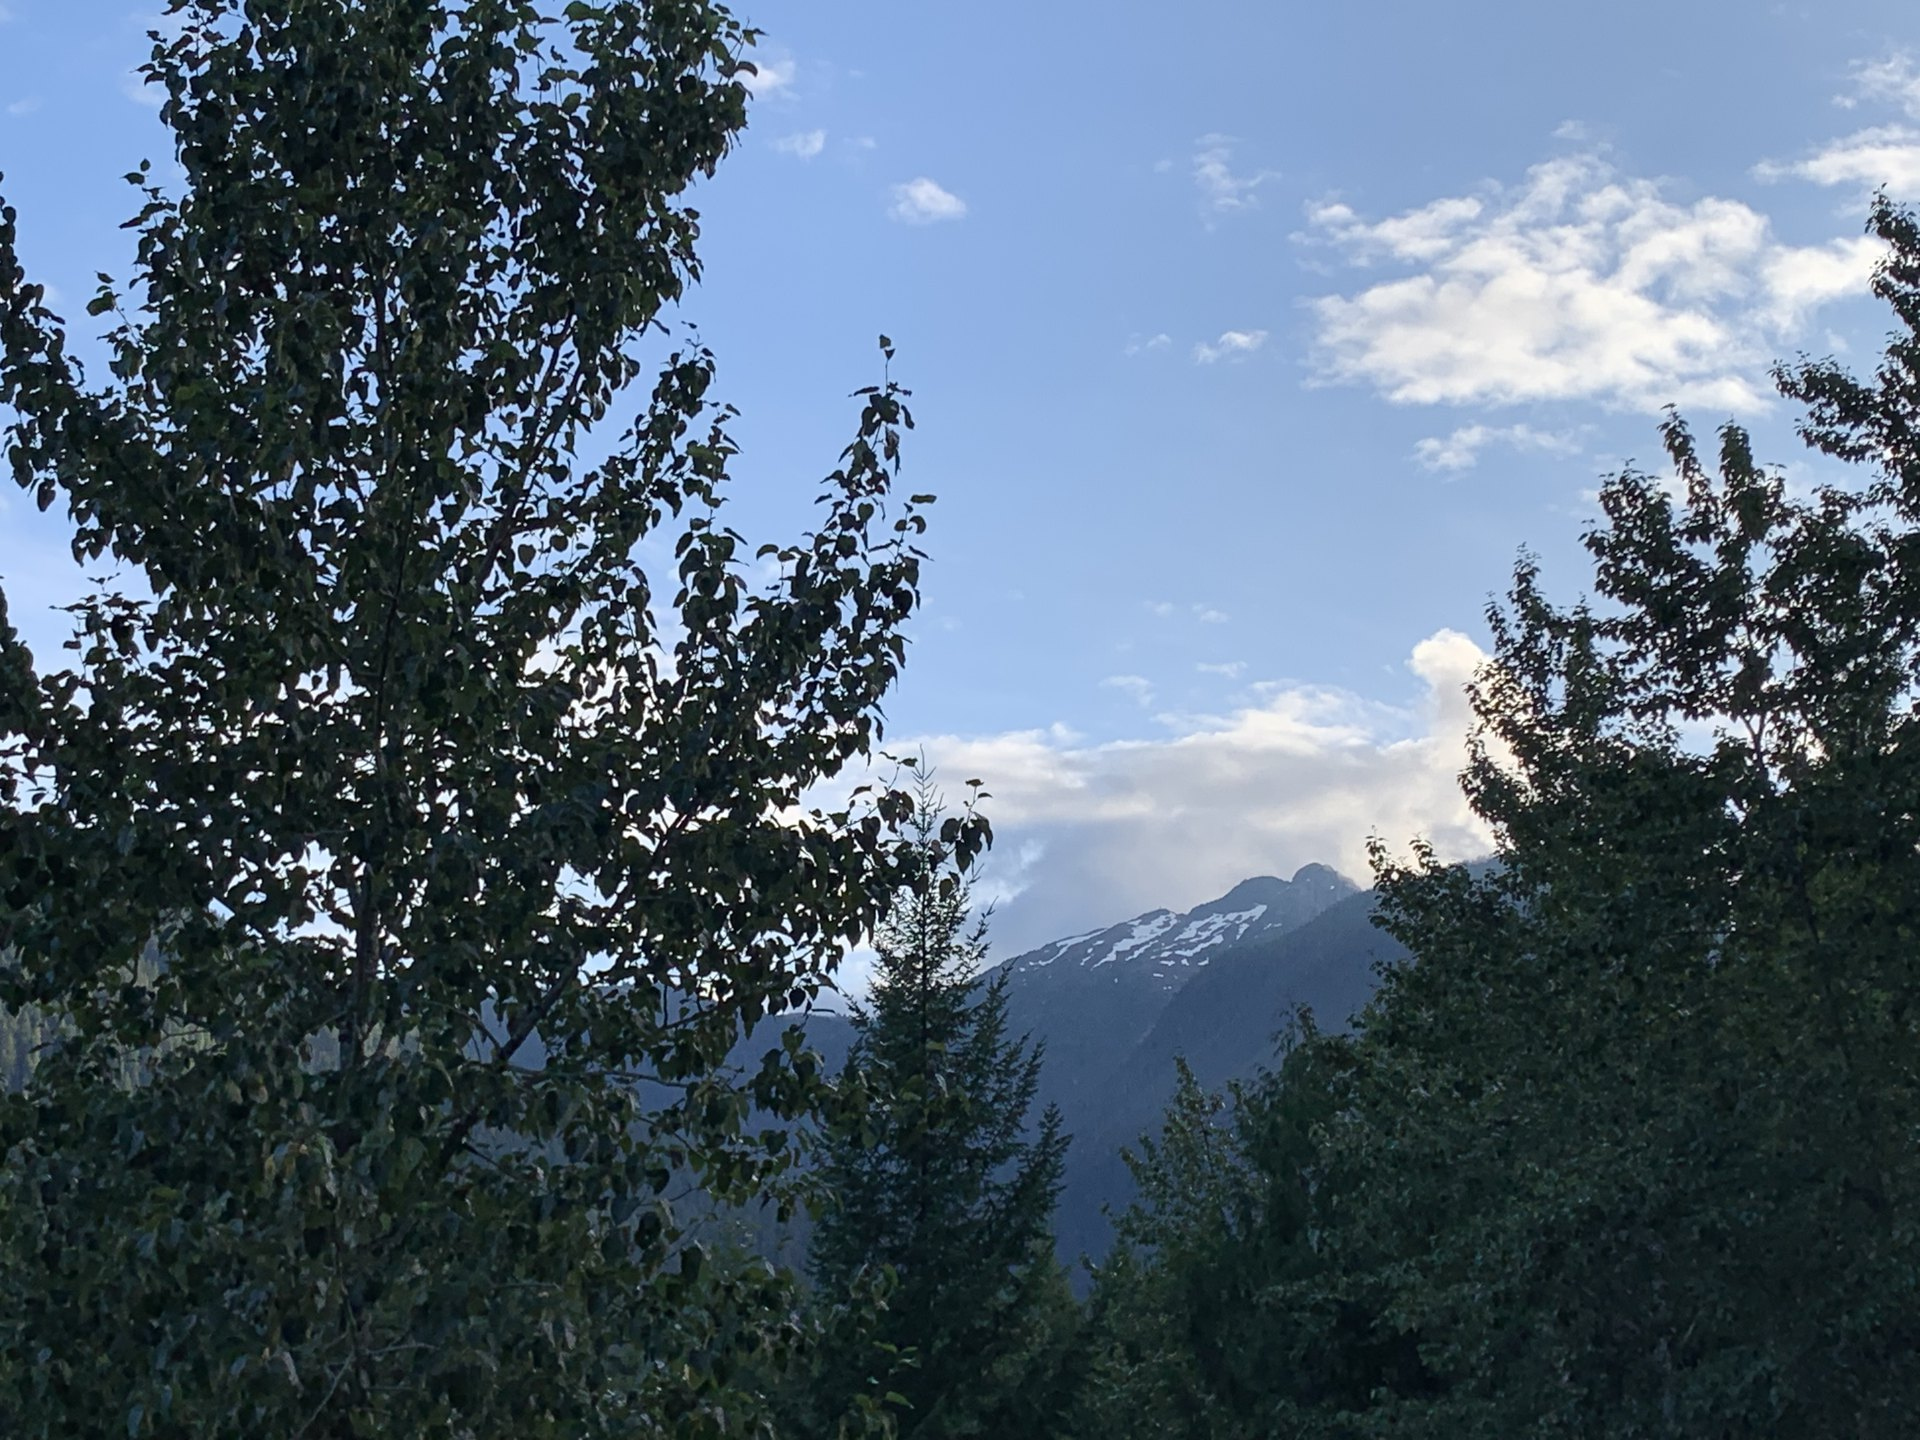 Acts 21 NASB.  A snowcapped mountain peaks through evergreen trees in the foreground.